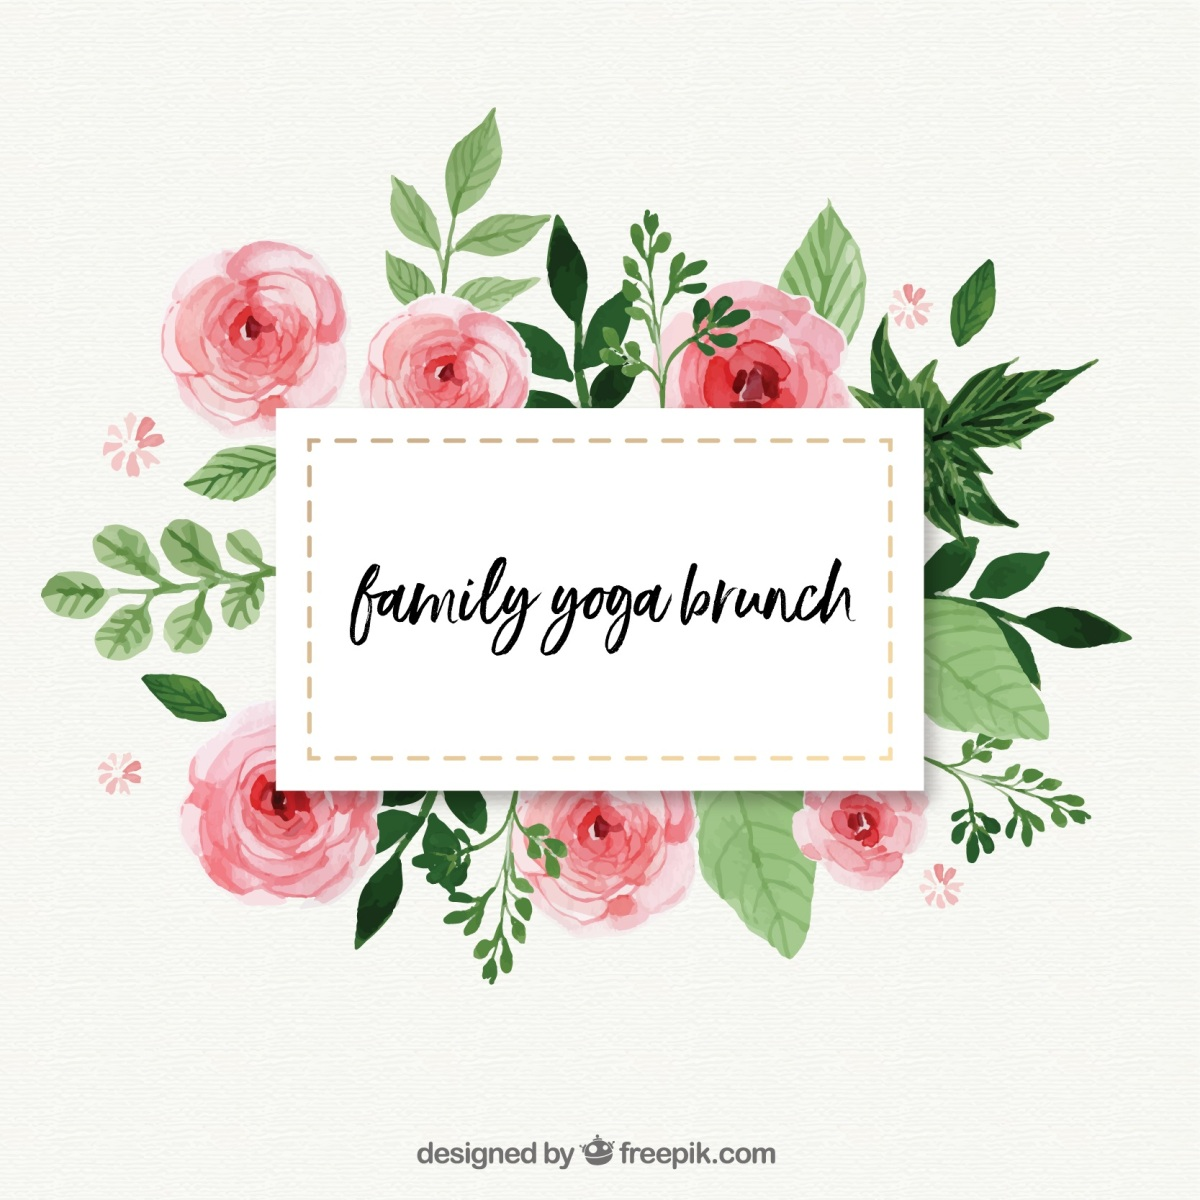 Kids & Family Yoga Brunch at The Canvas Cafe: Saturday 14th April 2018